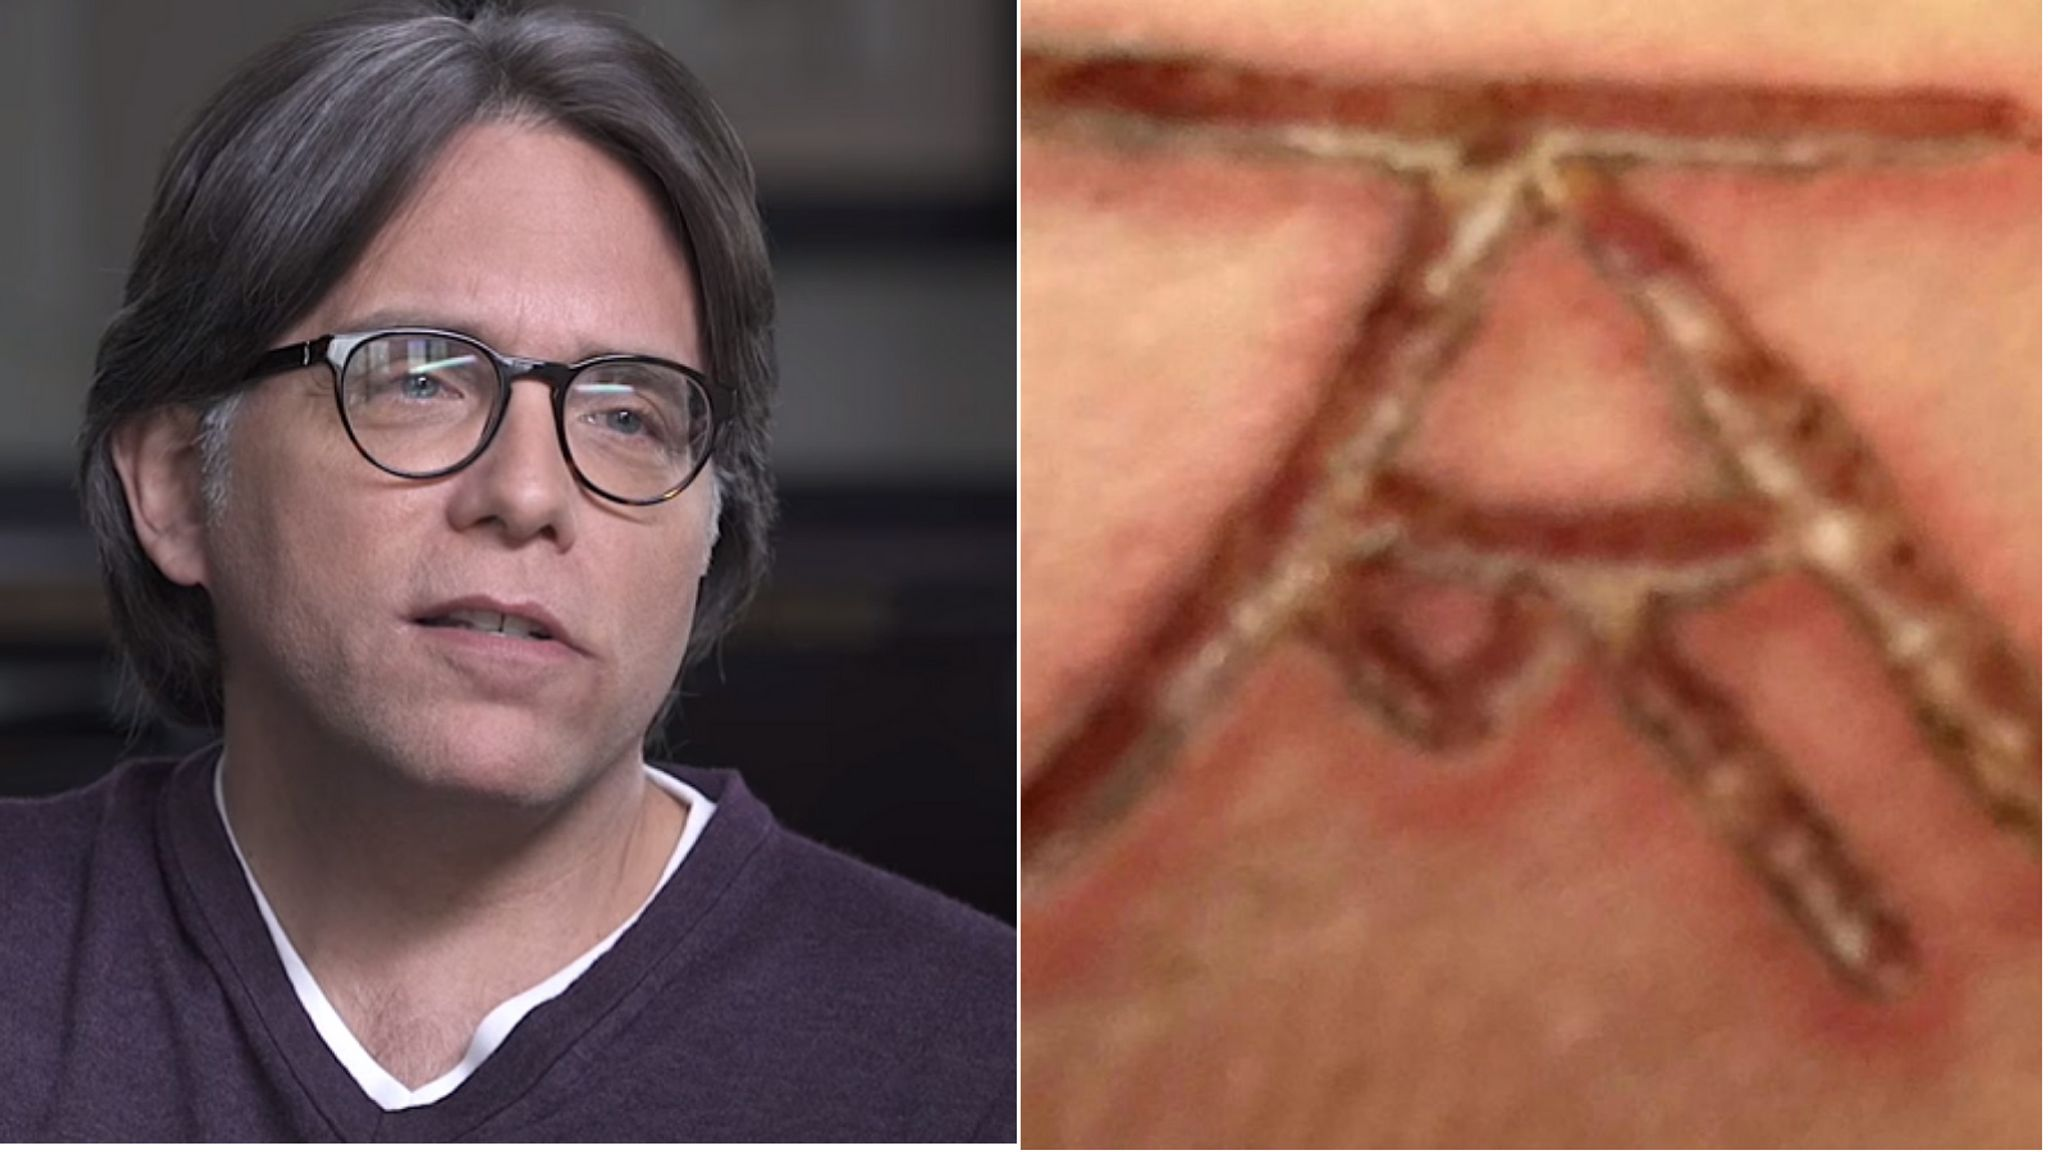 Allison Mack Nude keith raniere: man guilty of running depraved sex cult which